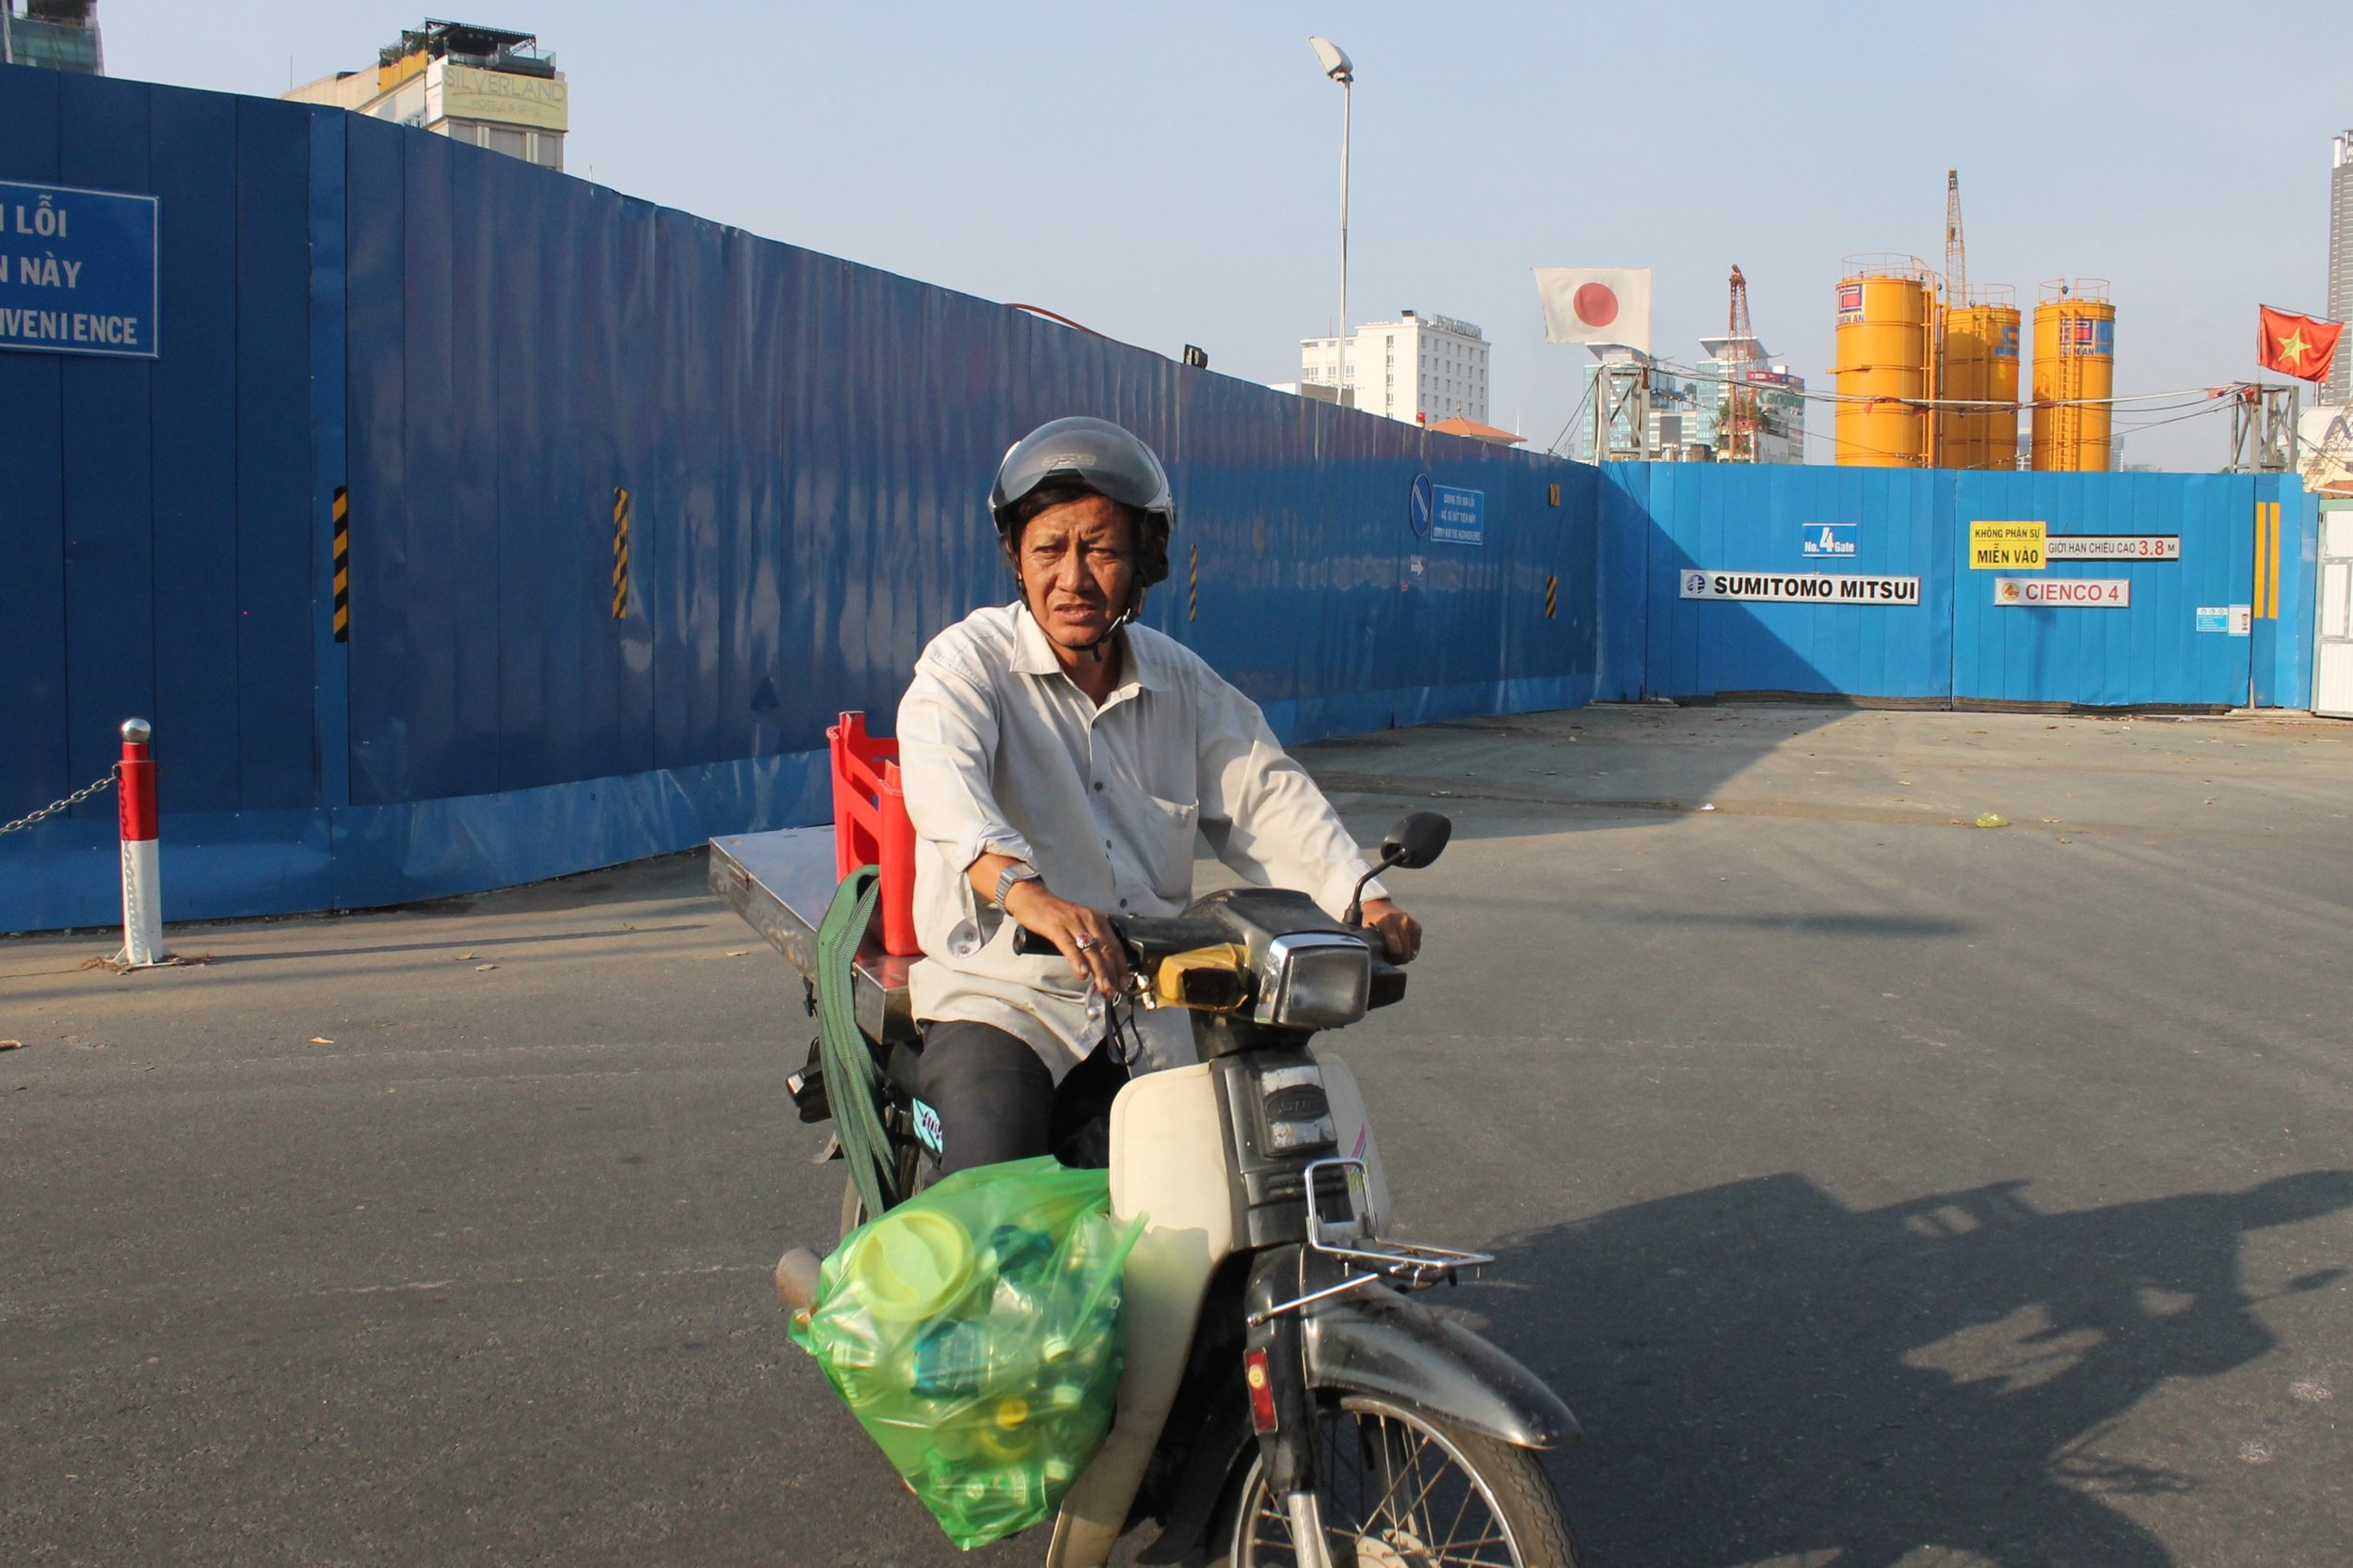 A man prepares to face the ruthless traffic in Ho Chi Minh City. Pictured in the backdrop is one of many construction sites in this metropolis.